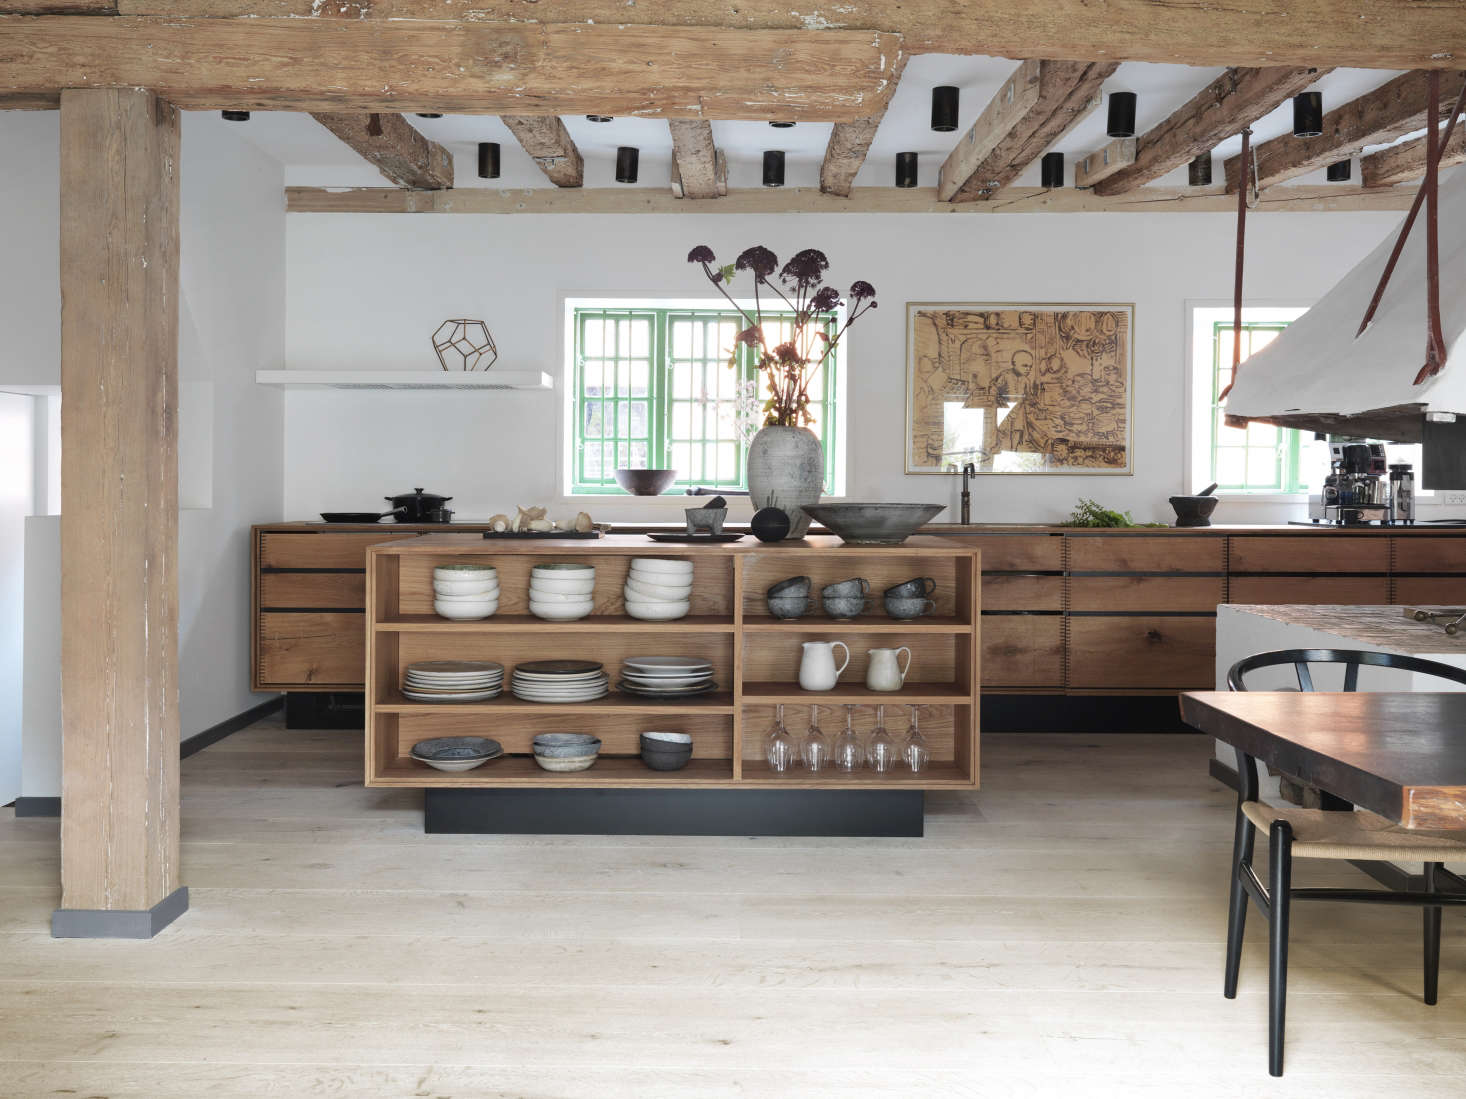 Open shelving on one side of the kitchen island keeps ceramics from Noma on display.